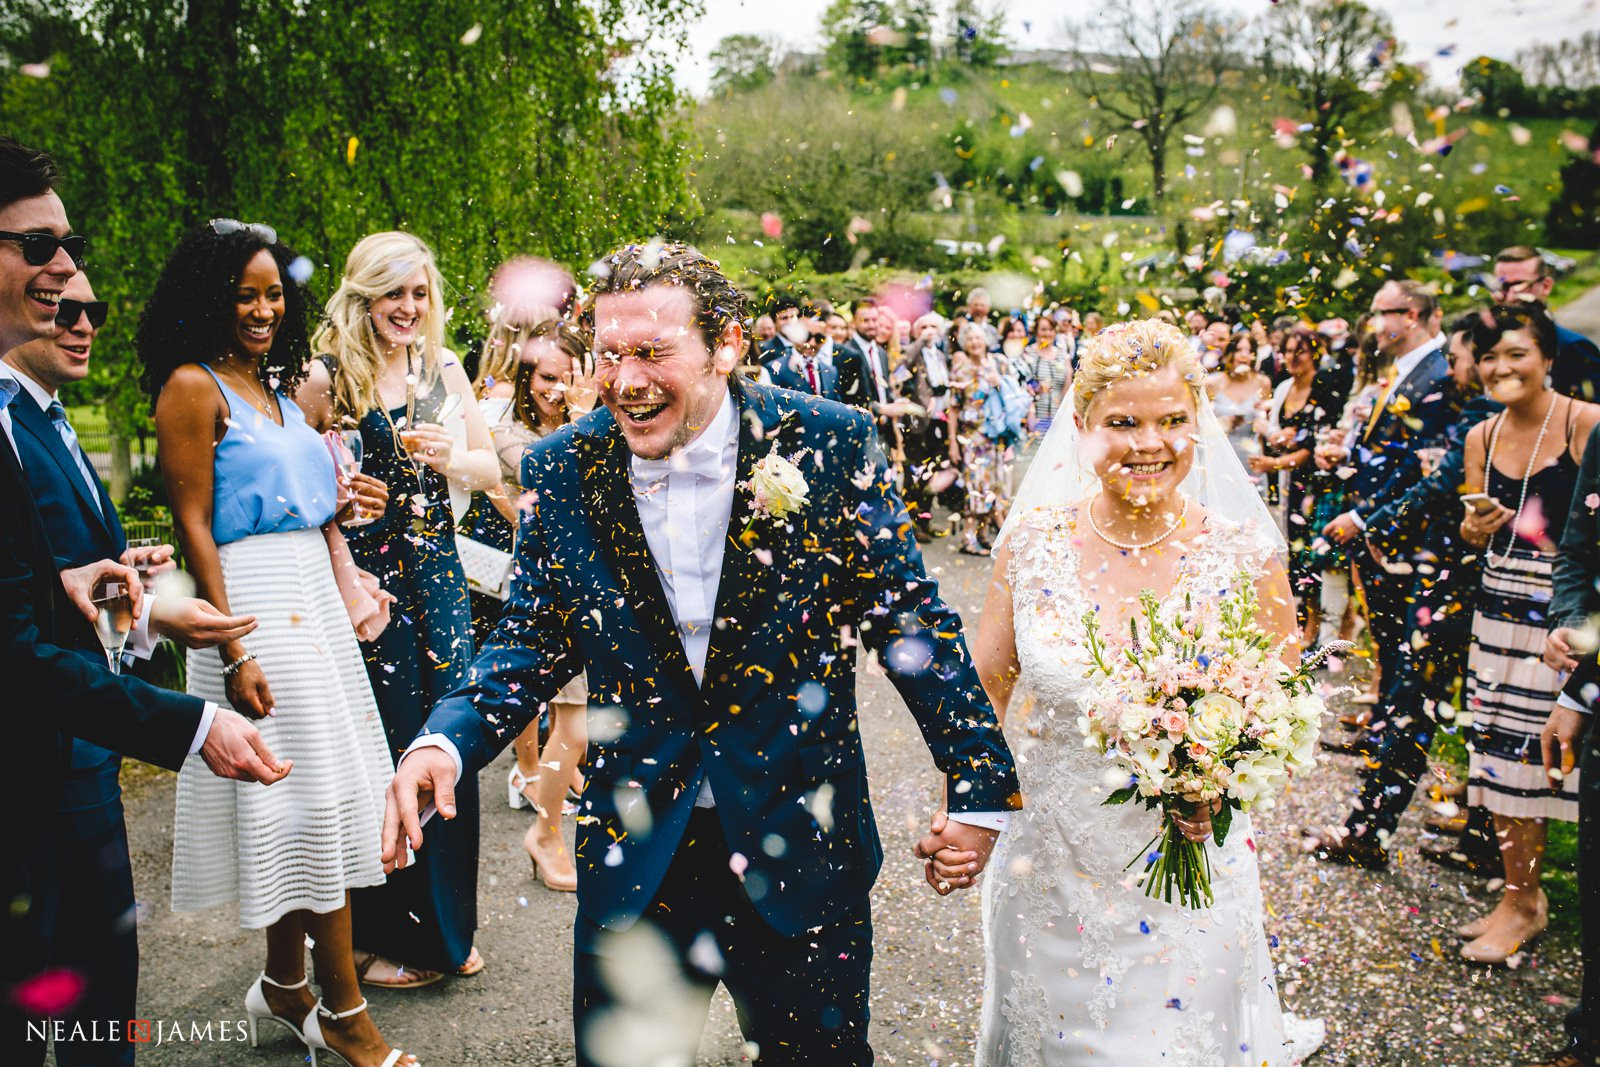 A bride and groom laugh as they're showered with confetti at Gants Mill in Somerset